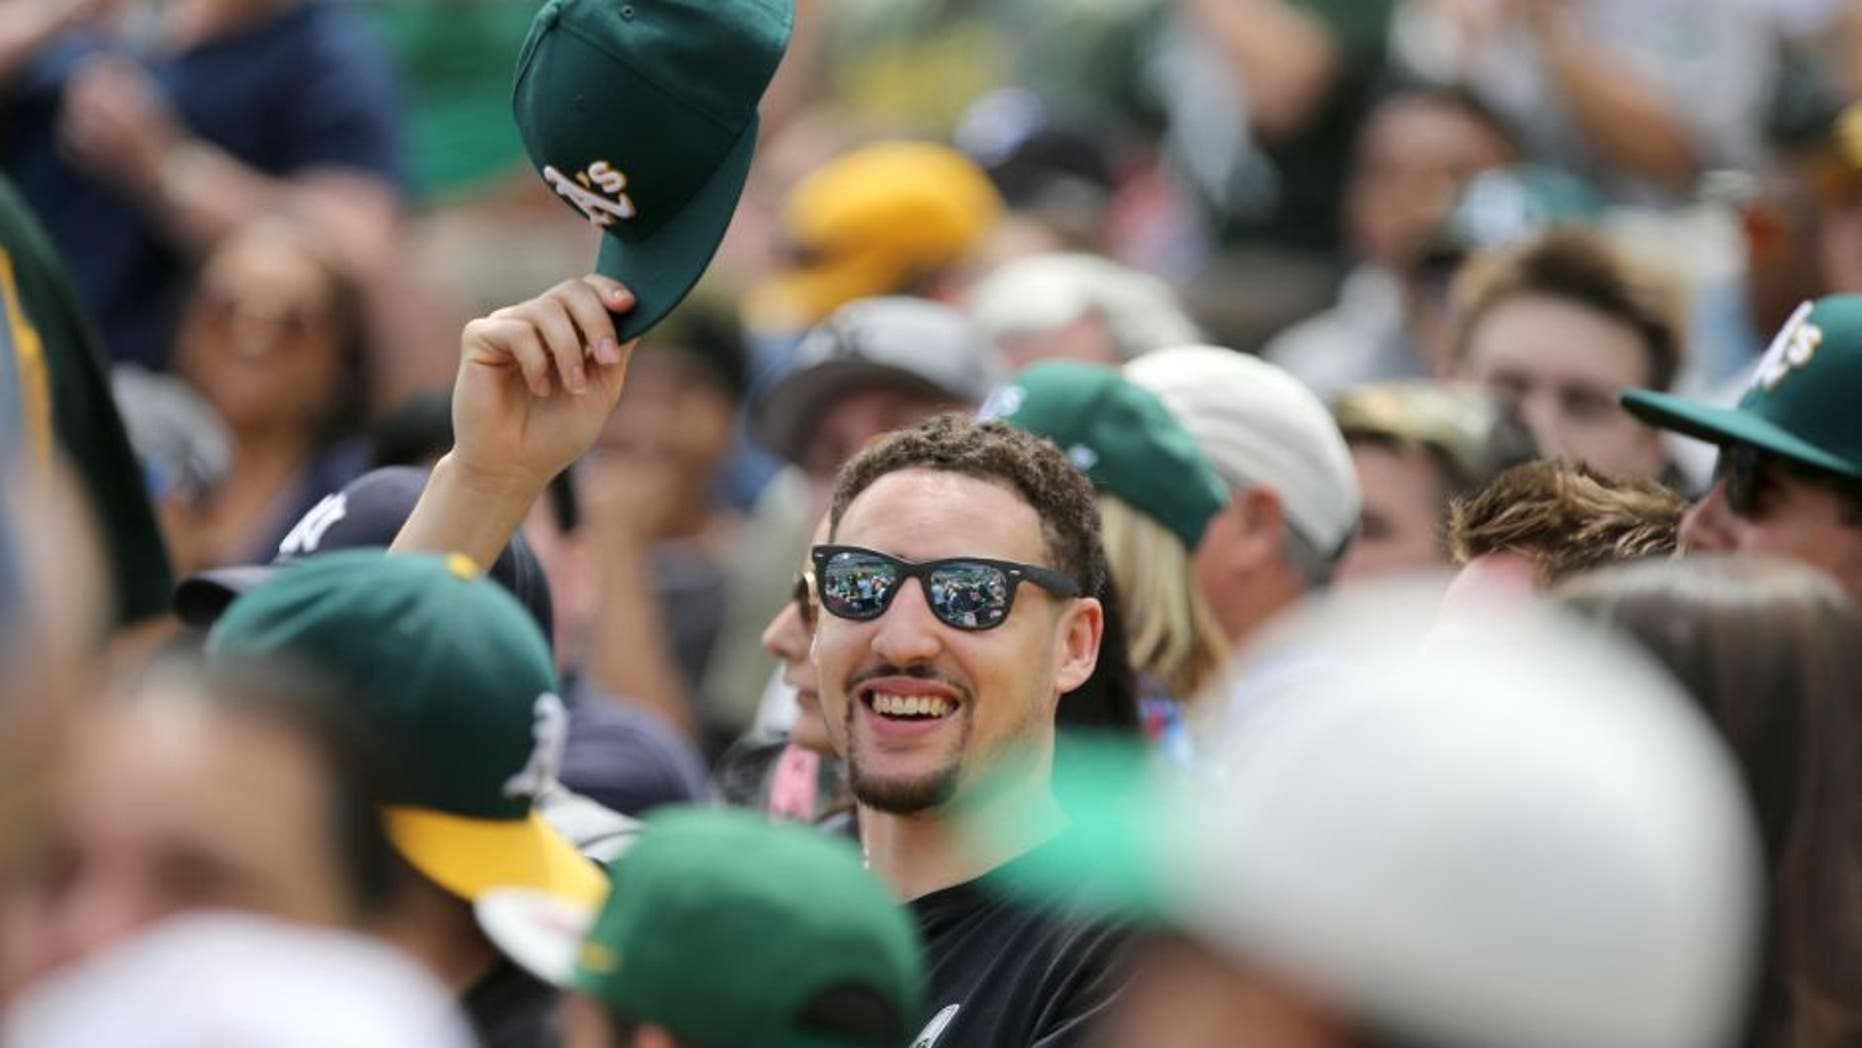 May 31, 2015; Oakland, CA, USA; Golden State Warriors guard Klay Thompson smiles and waves his Oakland Athletics hat during the third inning against the New York Yankees at O.co Coliseum. Mandatory Credit: Kelley L Cox-USA TODAY Sports